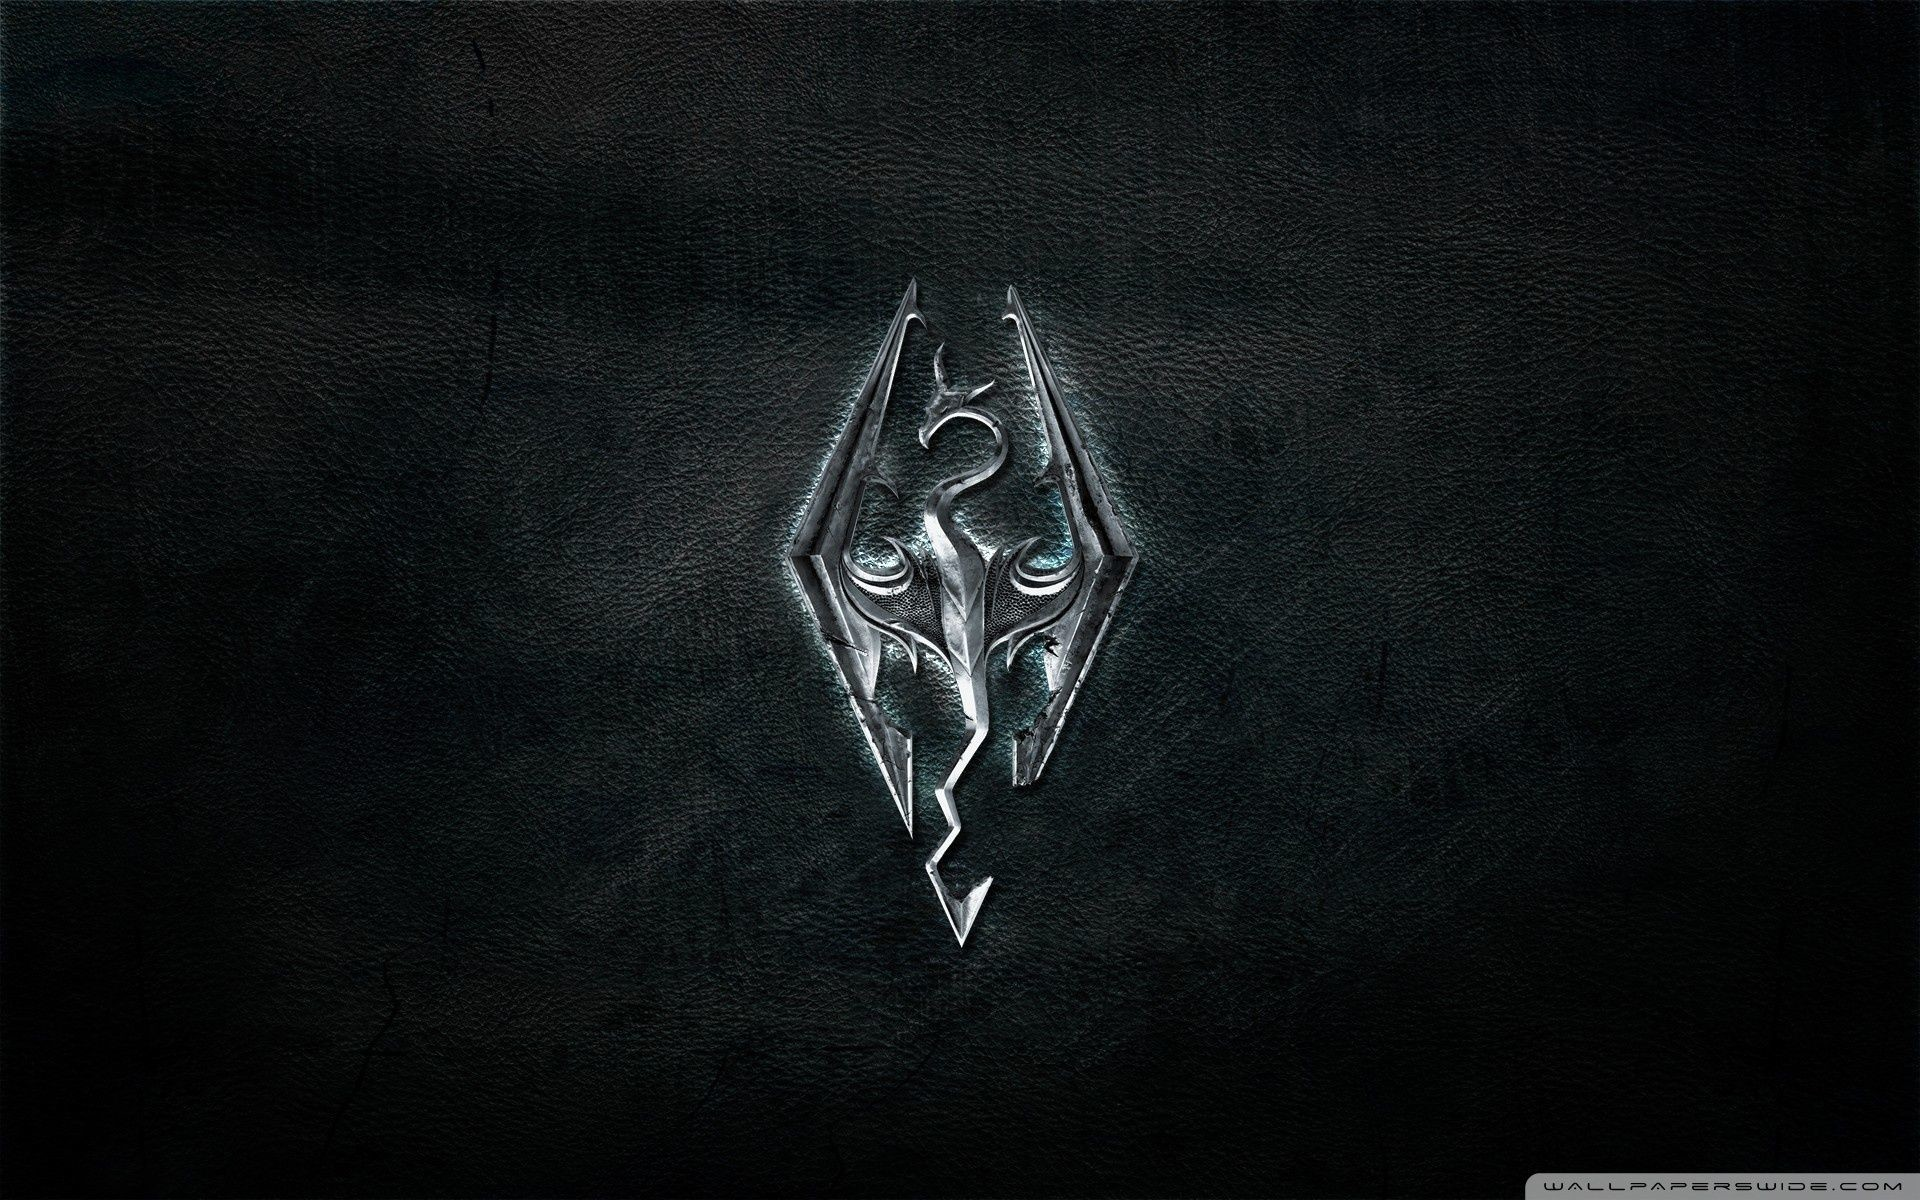 1920x1200 Skyrim Logo ❤ 4K HD Desktop Wallpaper for 4K Ultra HD TV • Tablet .